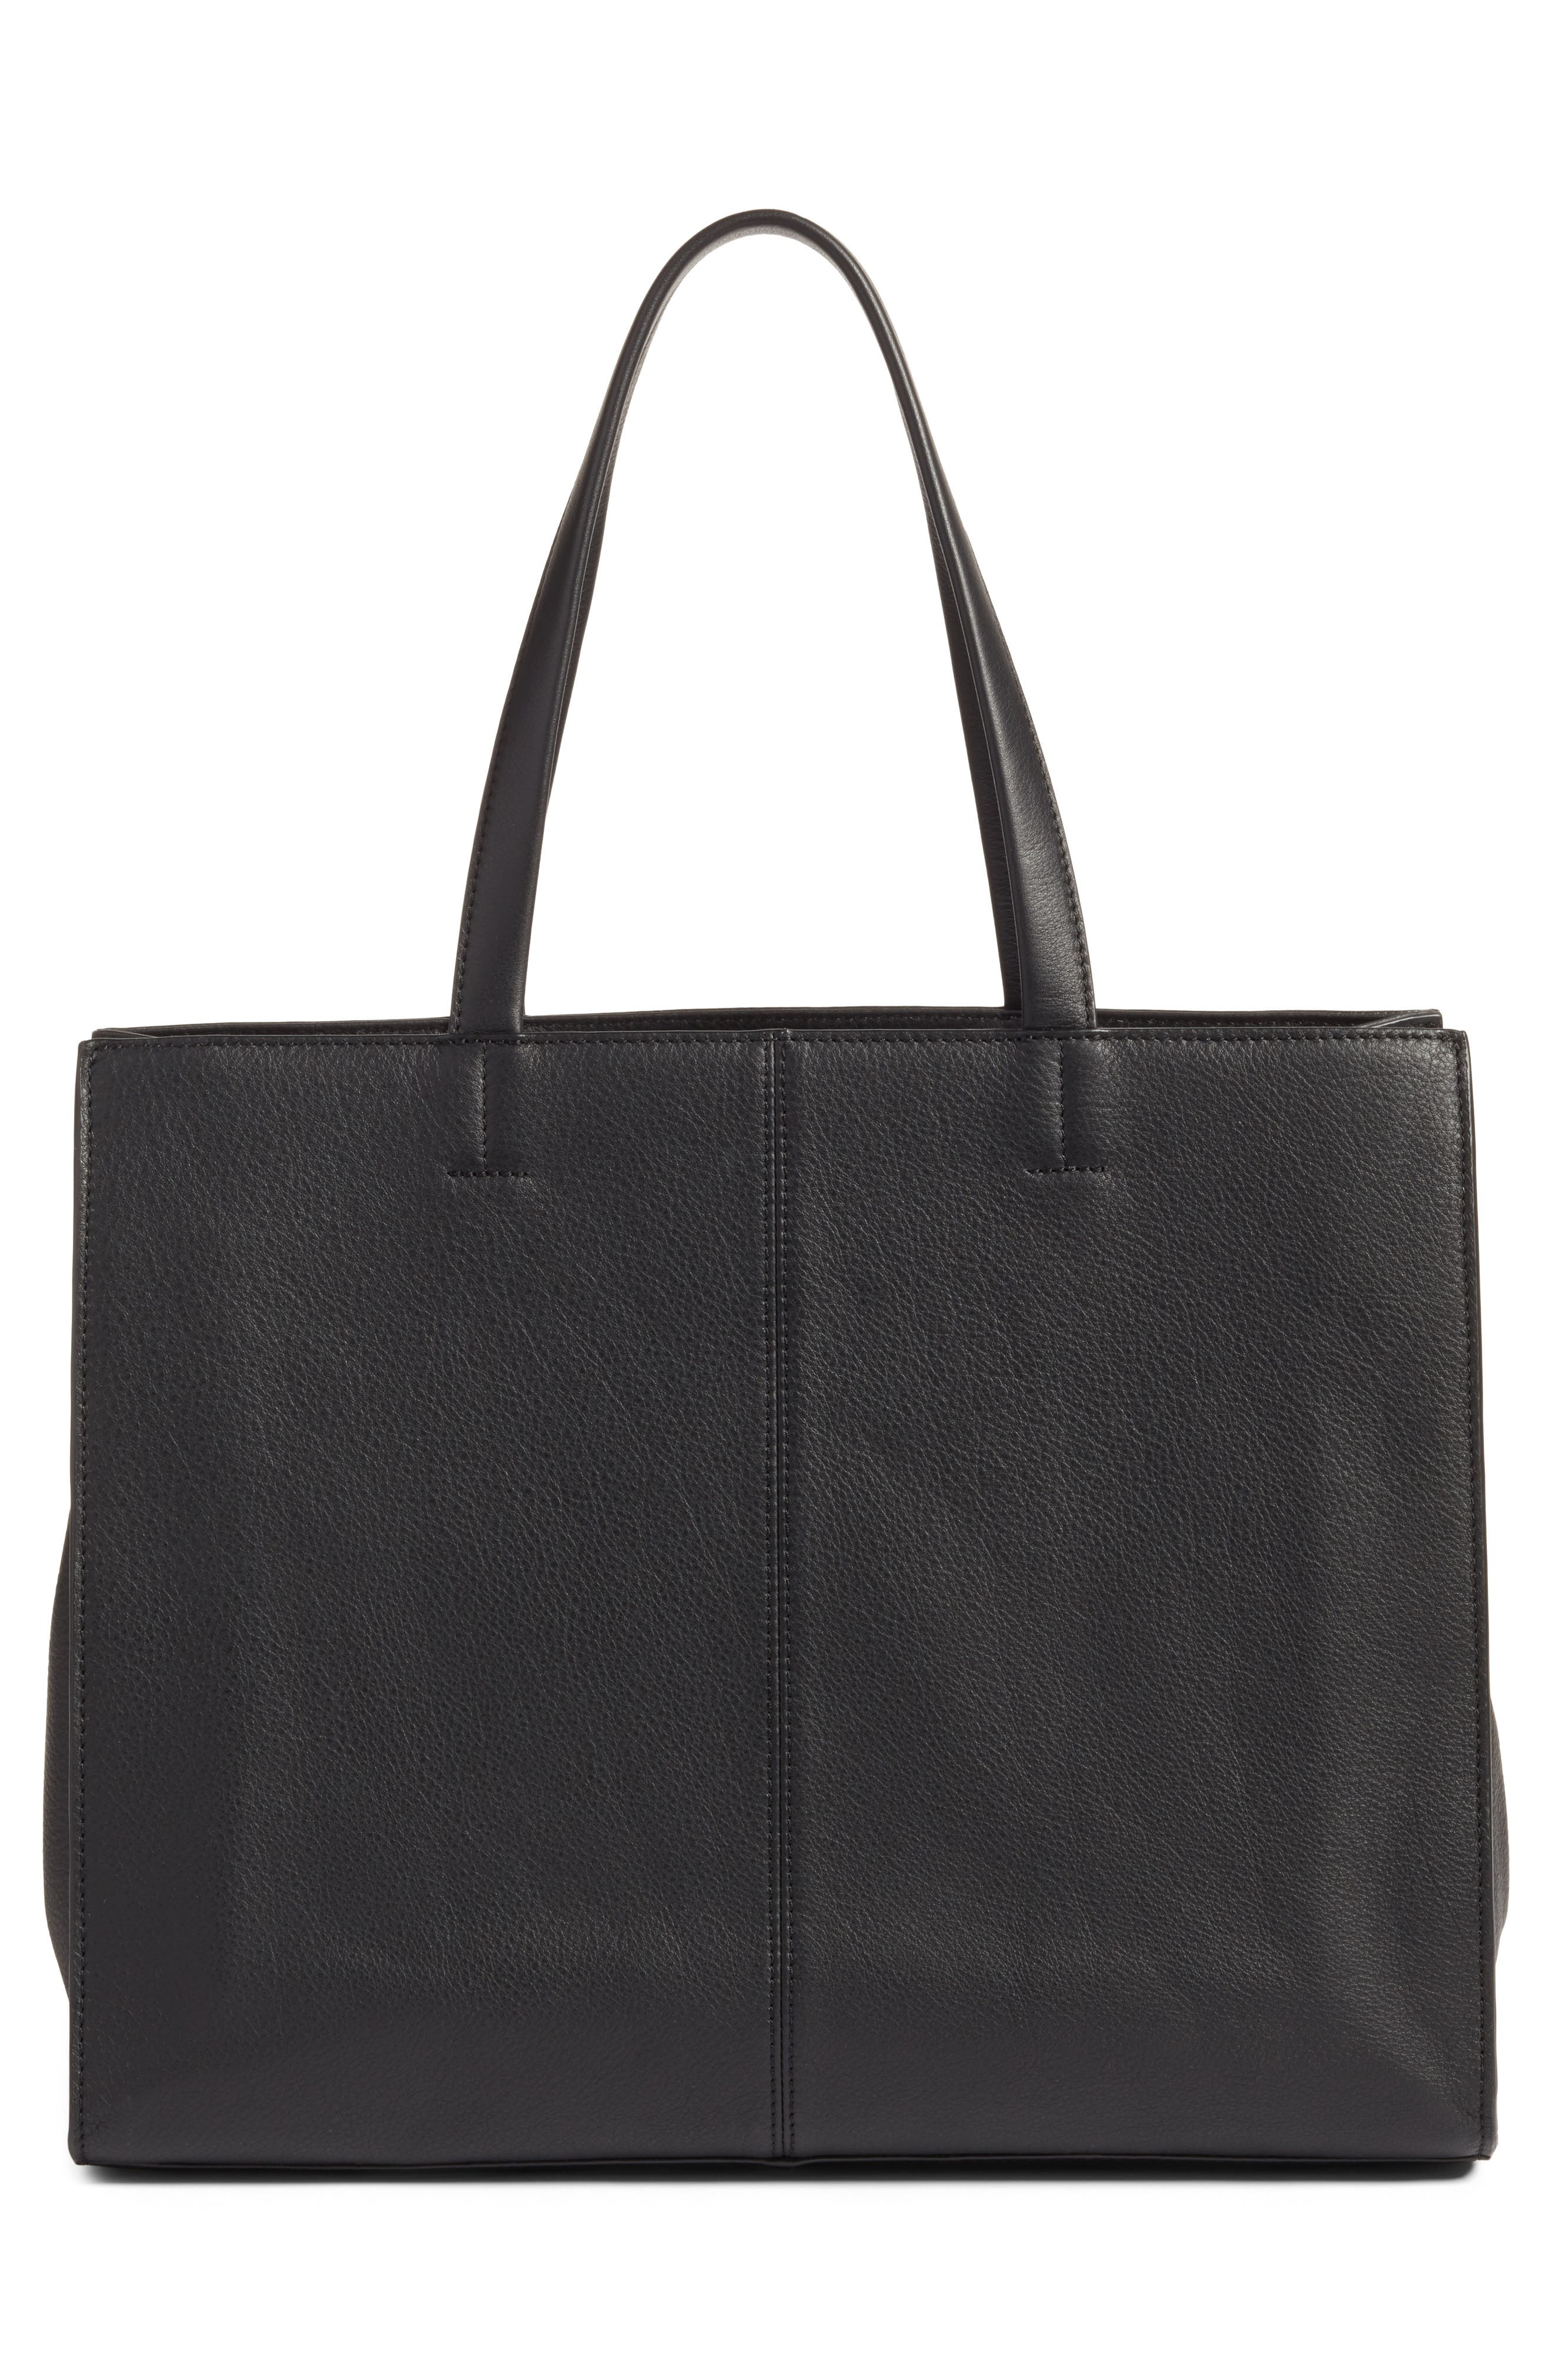 VINCE CAMUTO,                             Elvan Leather Tote,                             Alternate thumbnail 3, color,                             001